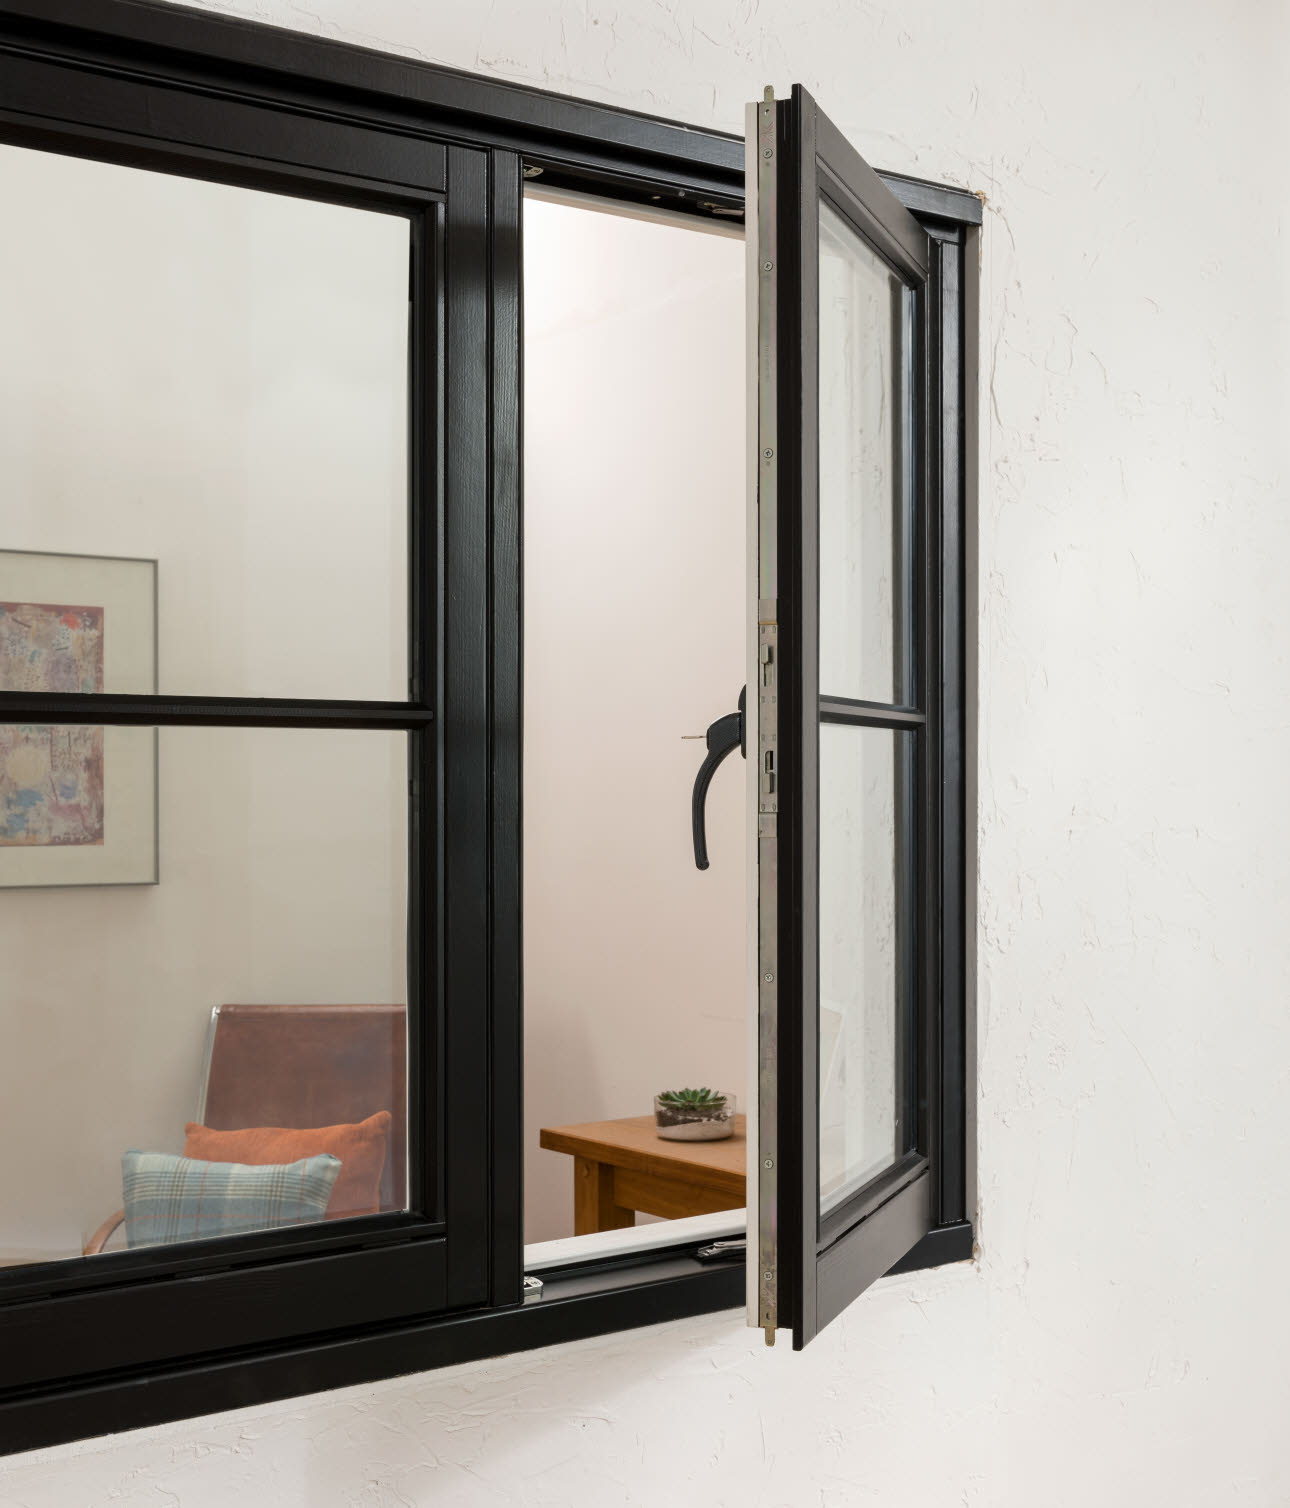 JELD-WEN Elegance Horizontal Bar Black Timber Window